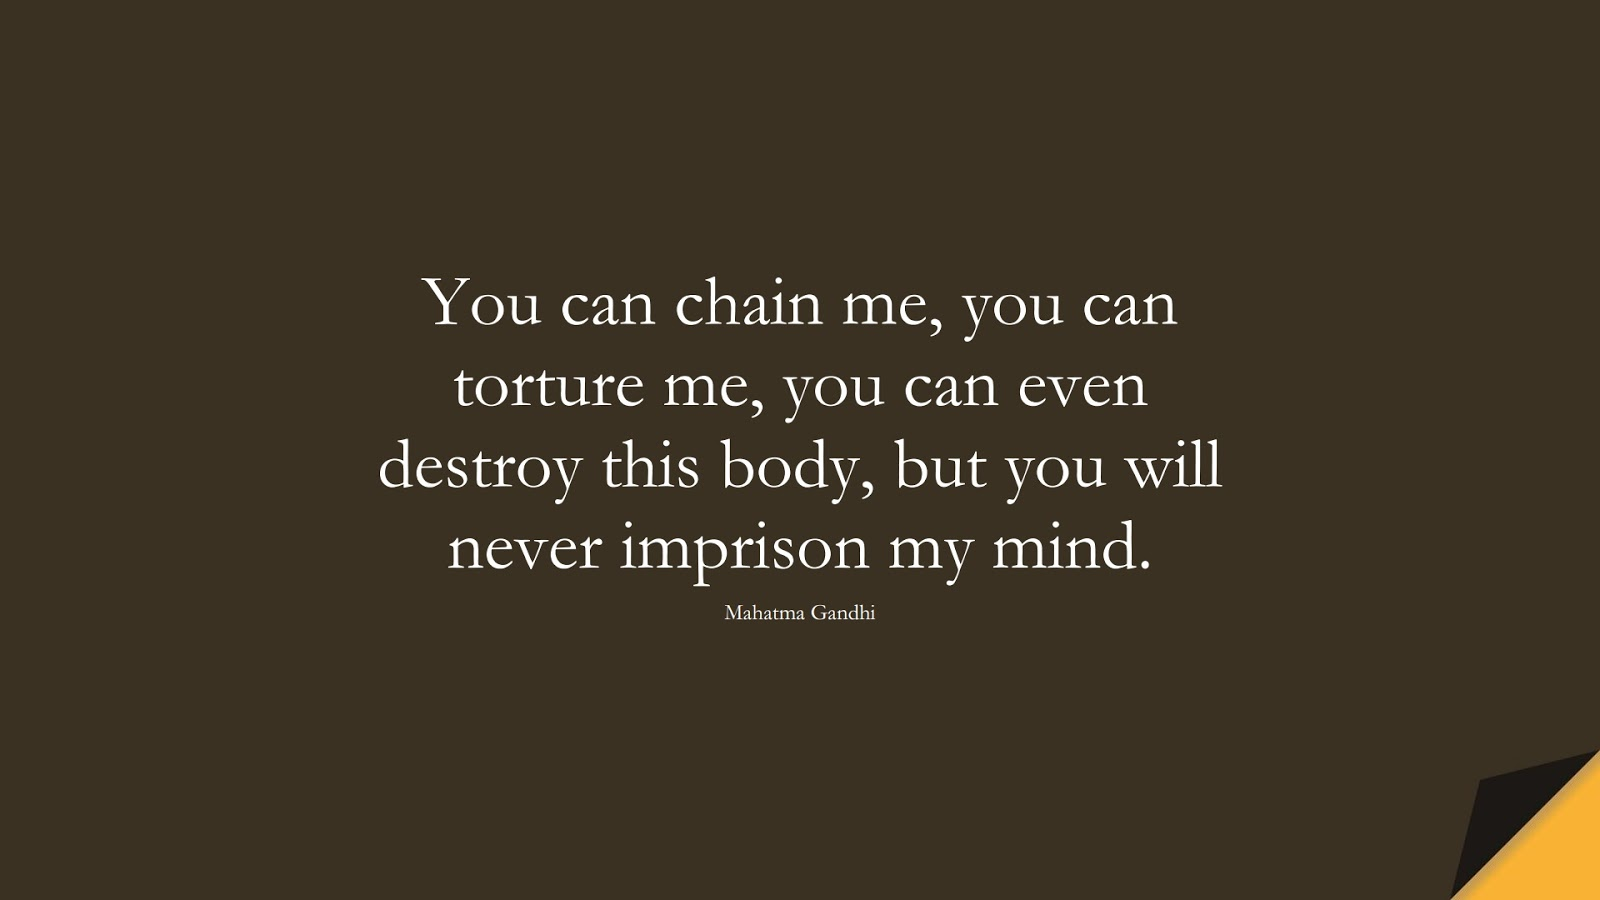 You can chain me, you can torture me, you can even destroy this body, but you will never imprison my mind. (Mahatma Gandhi);  #InspirationalQuotes